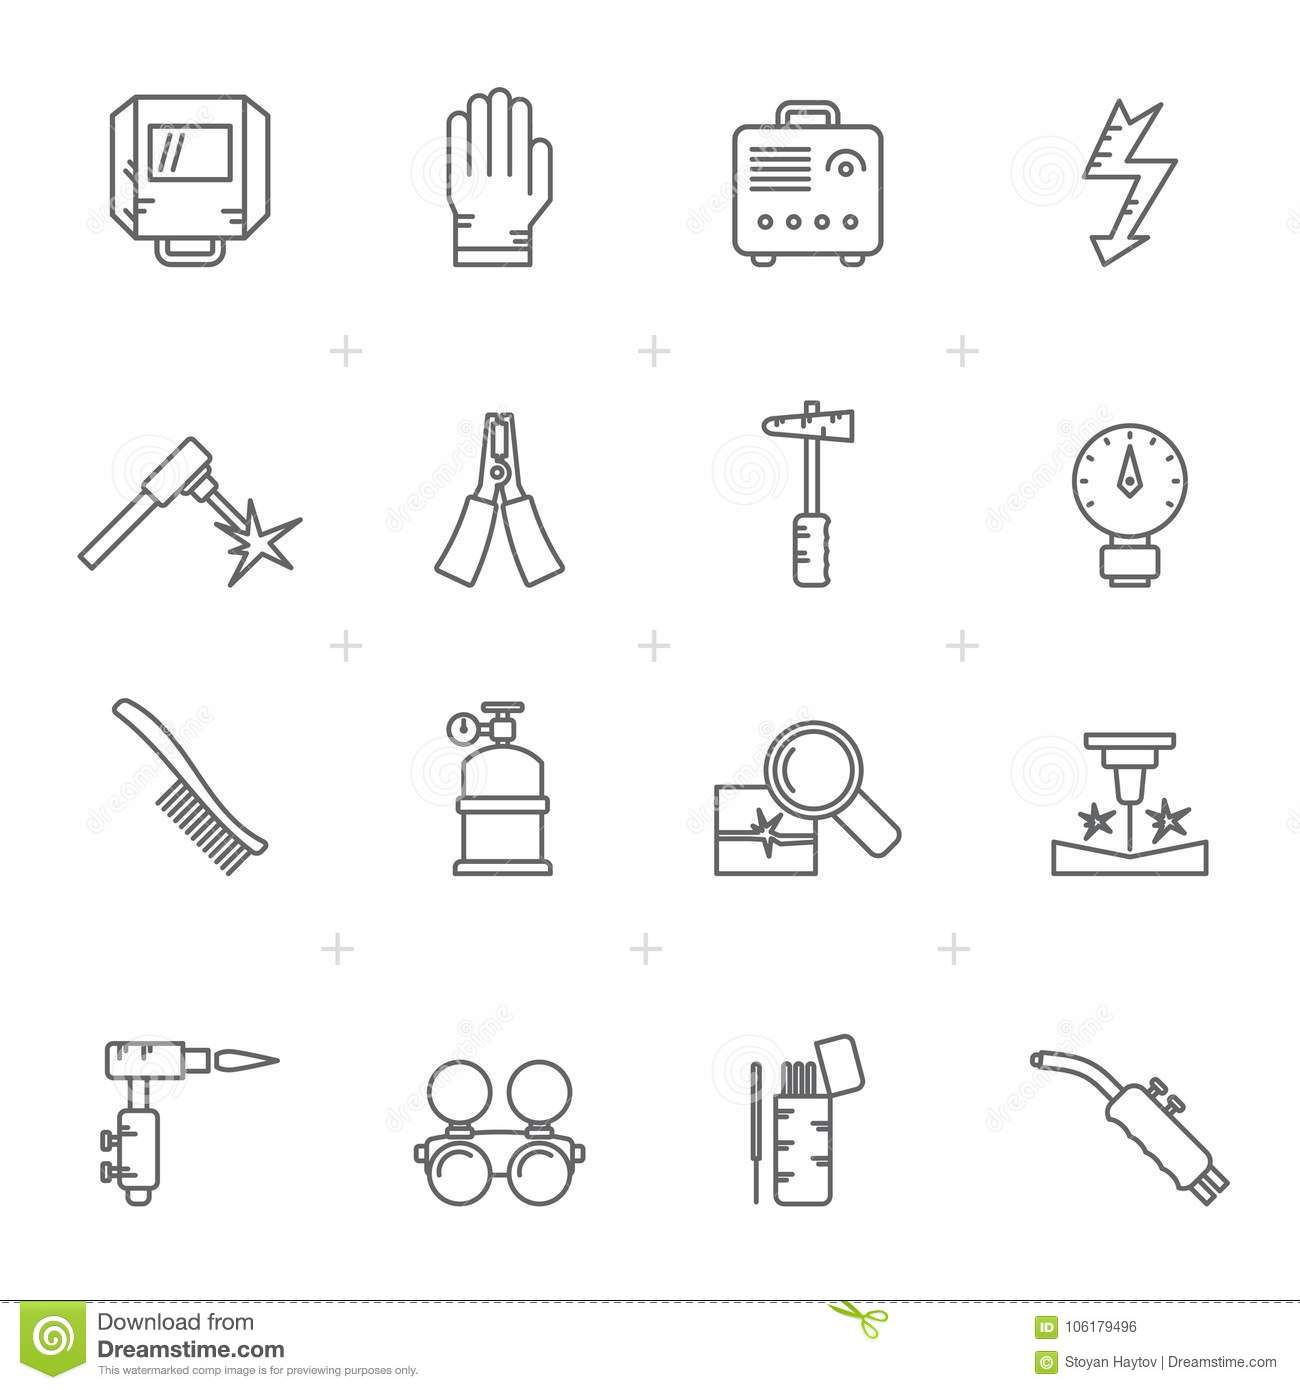 Line Welding and construction tools icons